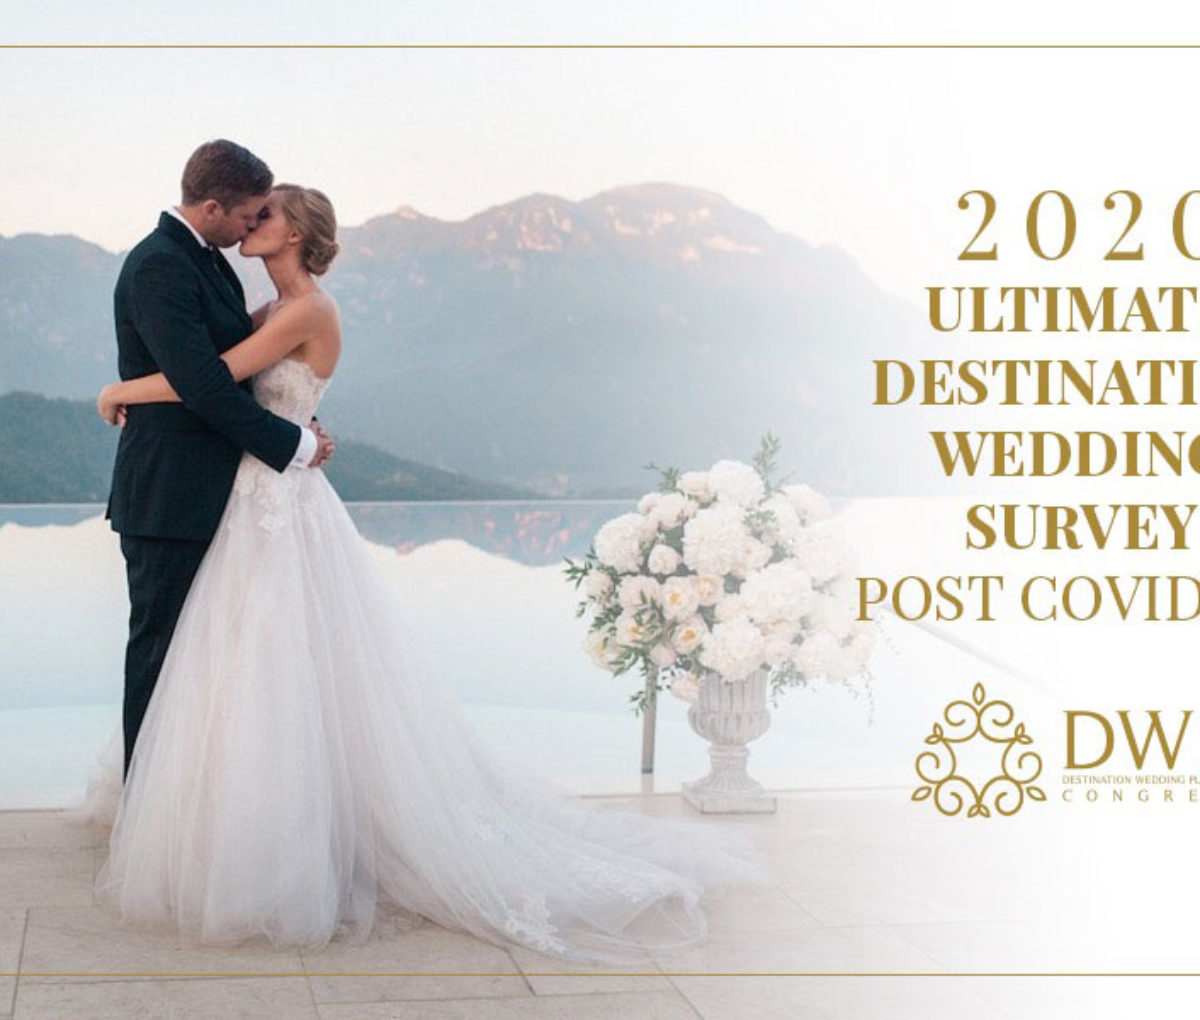 POST COVID-19 Pandemic Insight Survey For Destination Wedding Industry